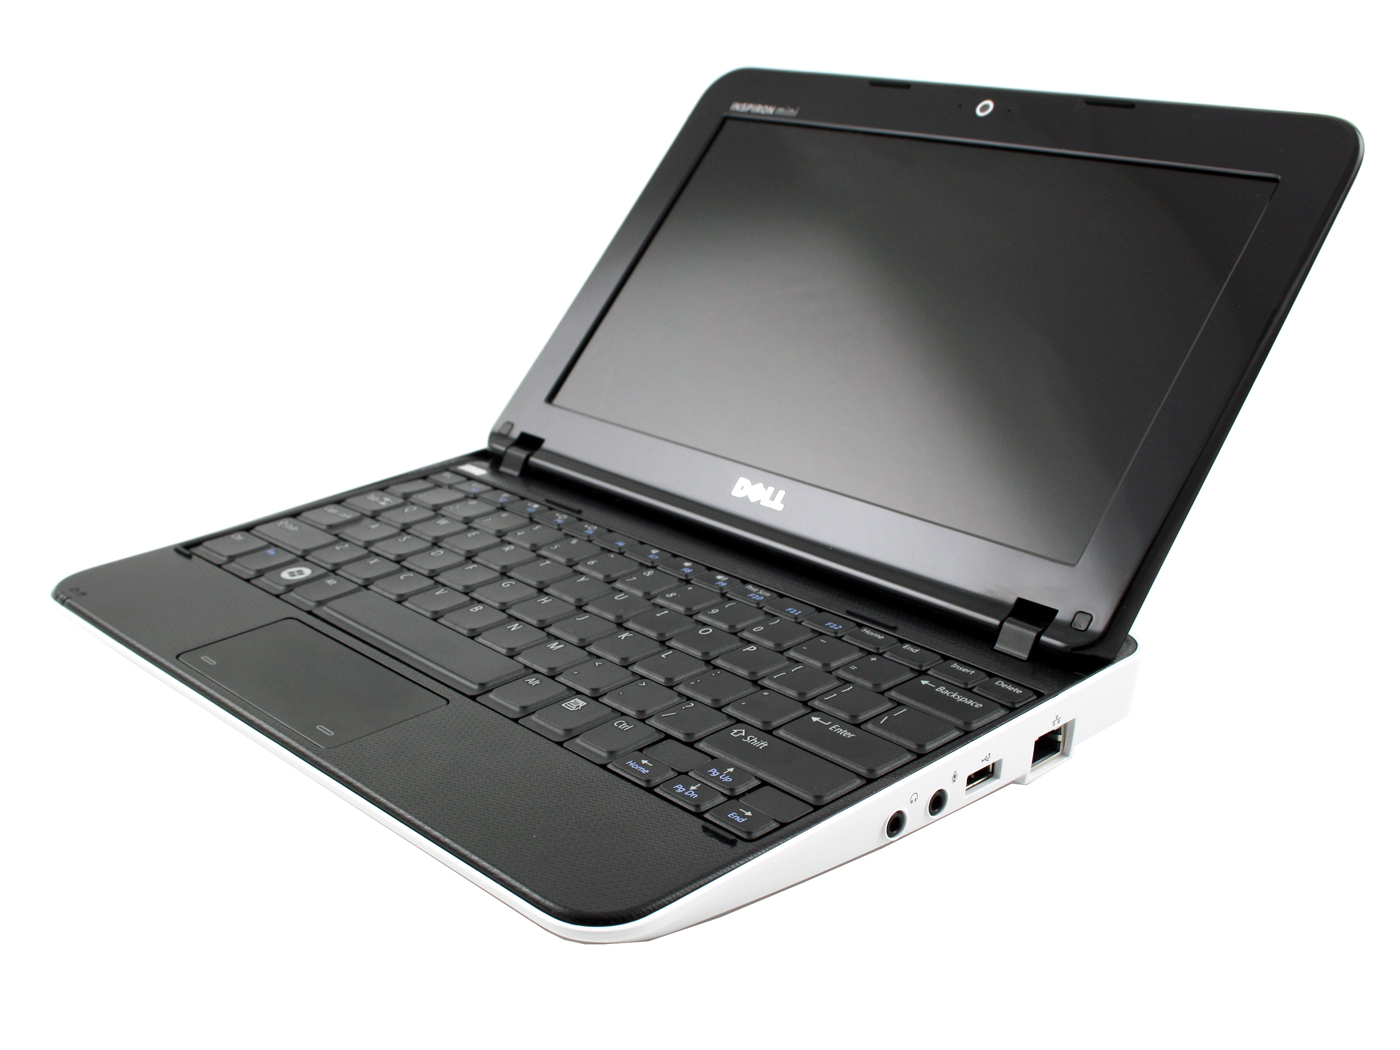 HP MINI 210-1010SL NOTEBOOK RALINKMOTOROLA BLUETOOTH DRIVERS WINDOWS 7 (2019)